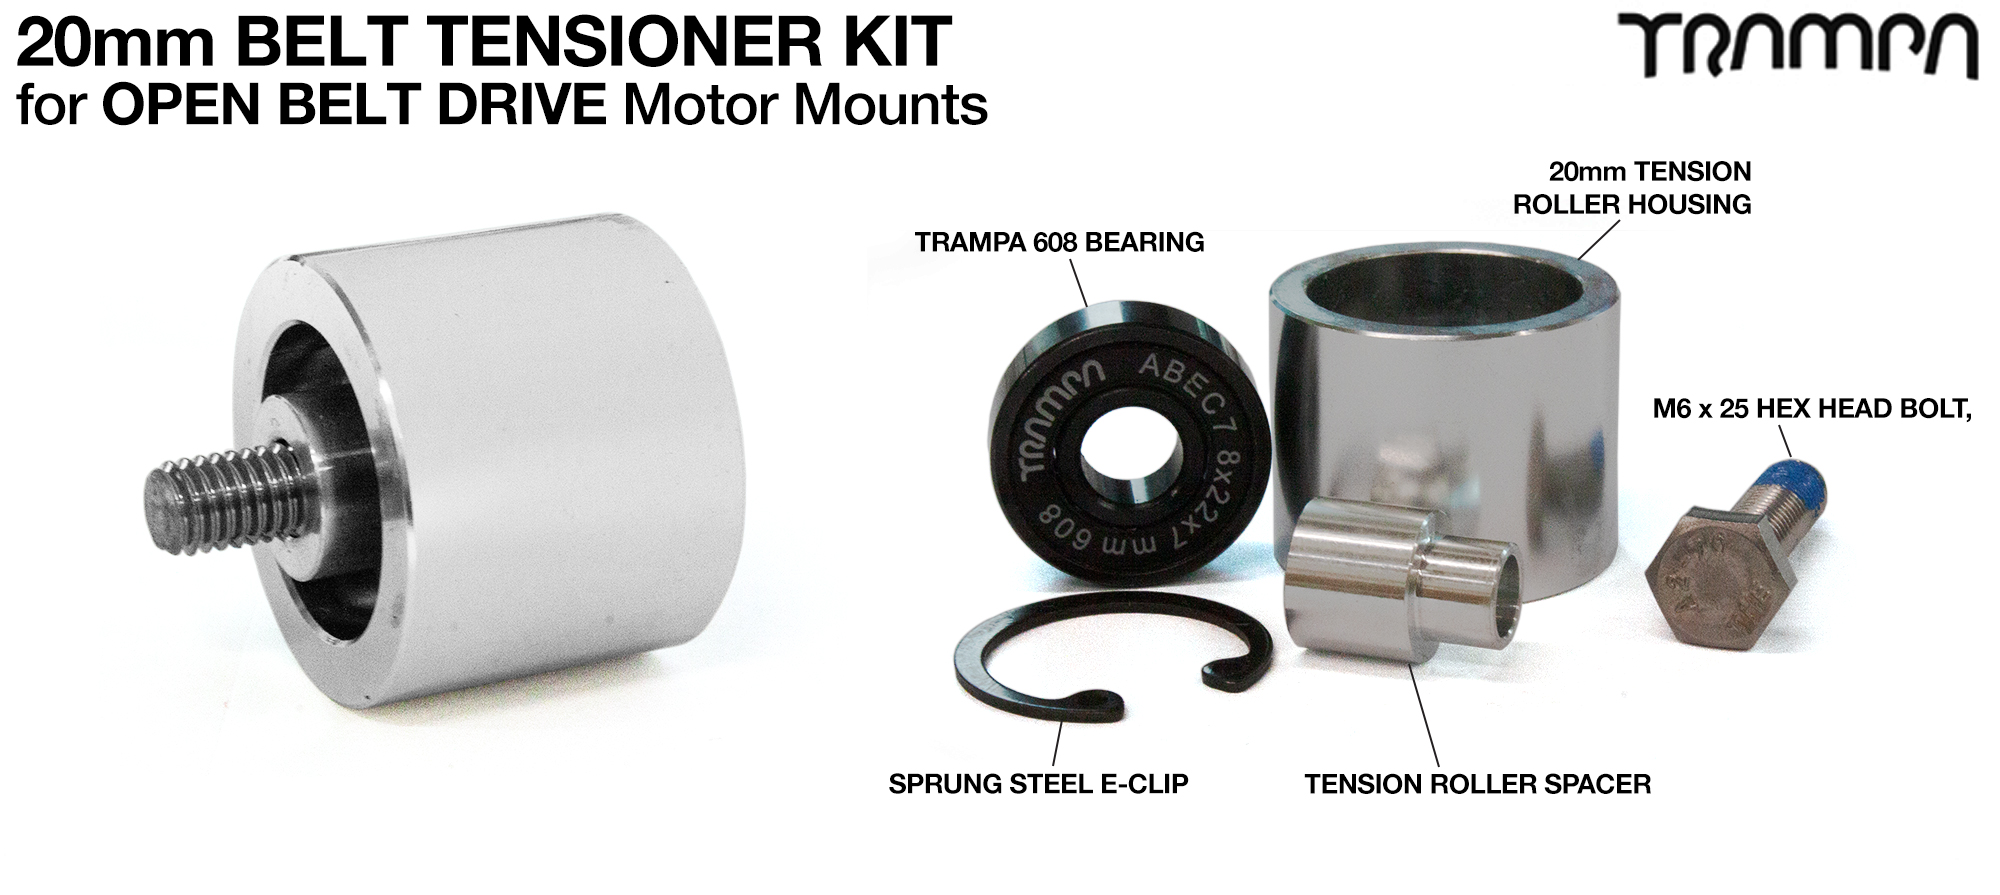 SILVER OBD 20mm Belt Tensioner